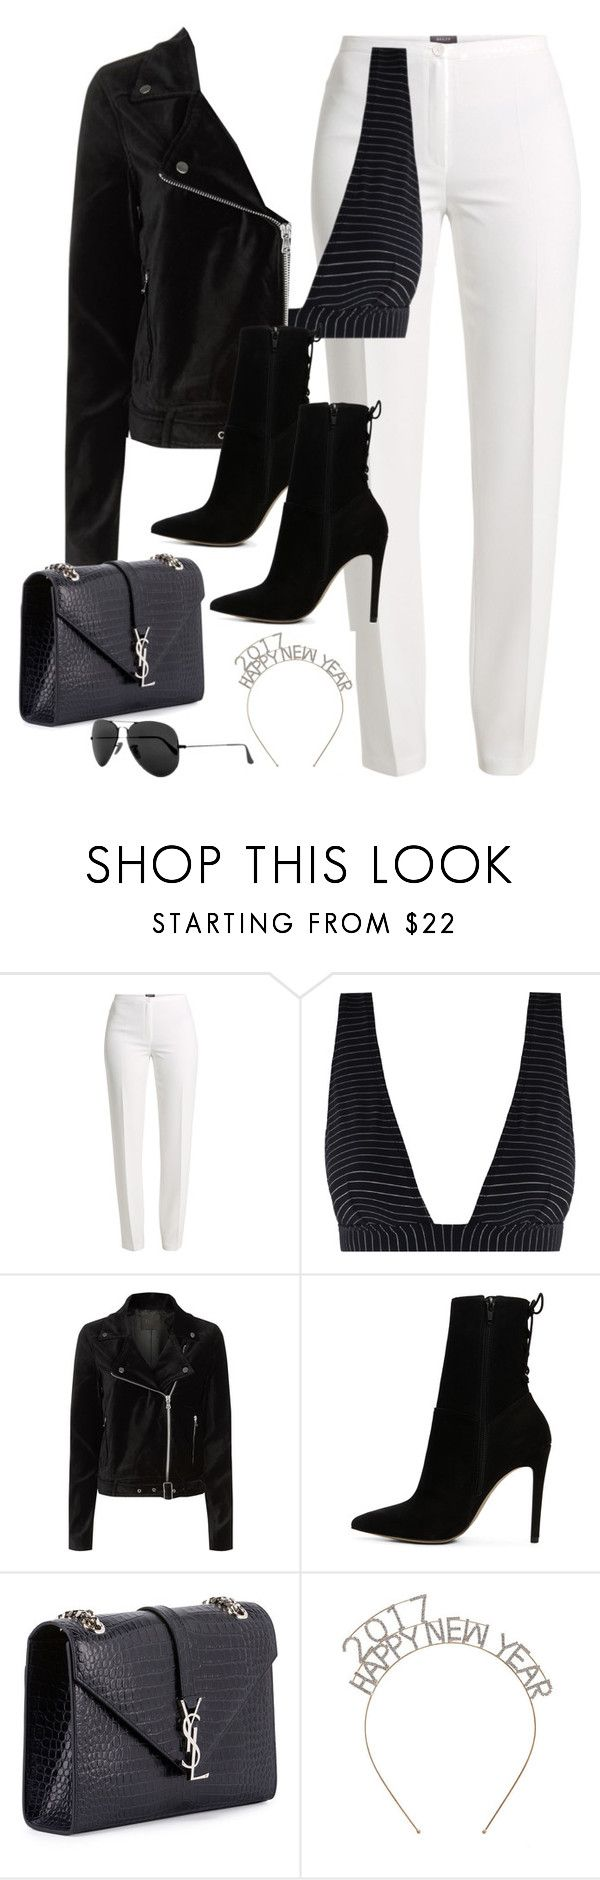 """""""Untitled #2919"""" by magsmccray ❤ liked on Polyvore featuring Basler, Zimmermann, Paige Denim, ALDO, Yves Saint Laurent and Ray-Ban"""